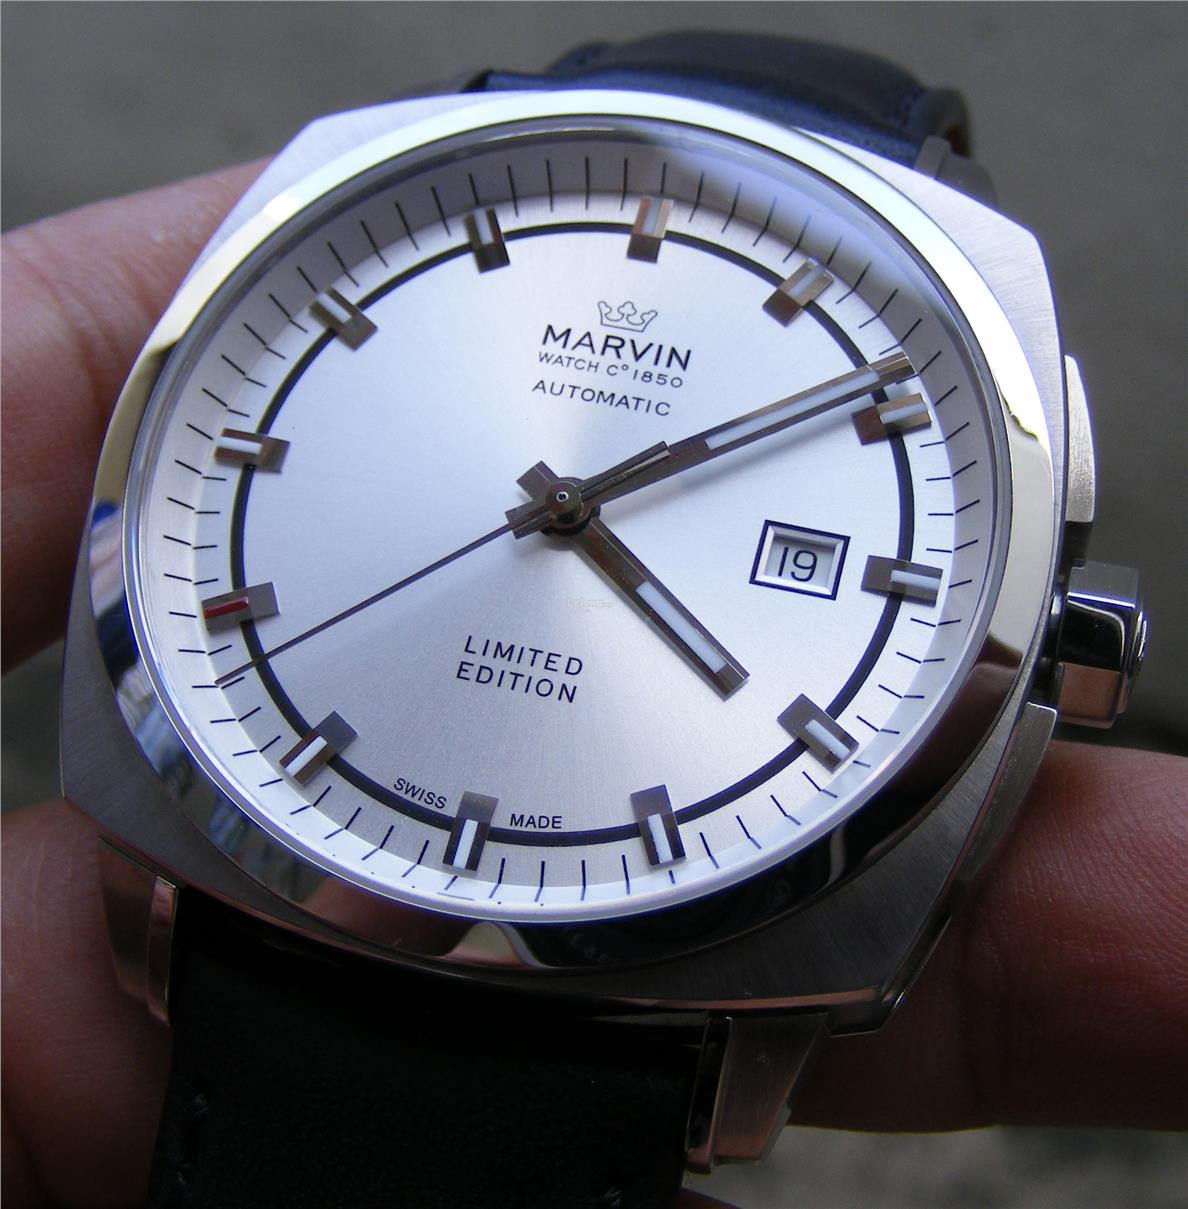 Swiss Made Marvin Cushion Limited Edition Automatic Watch (M120-13)